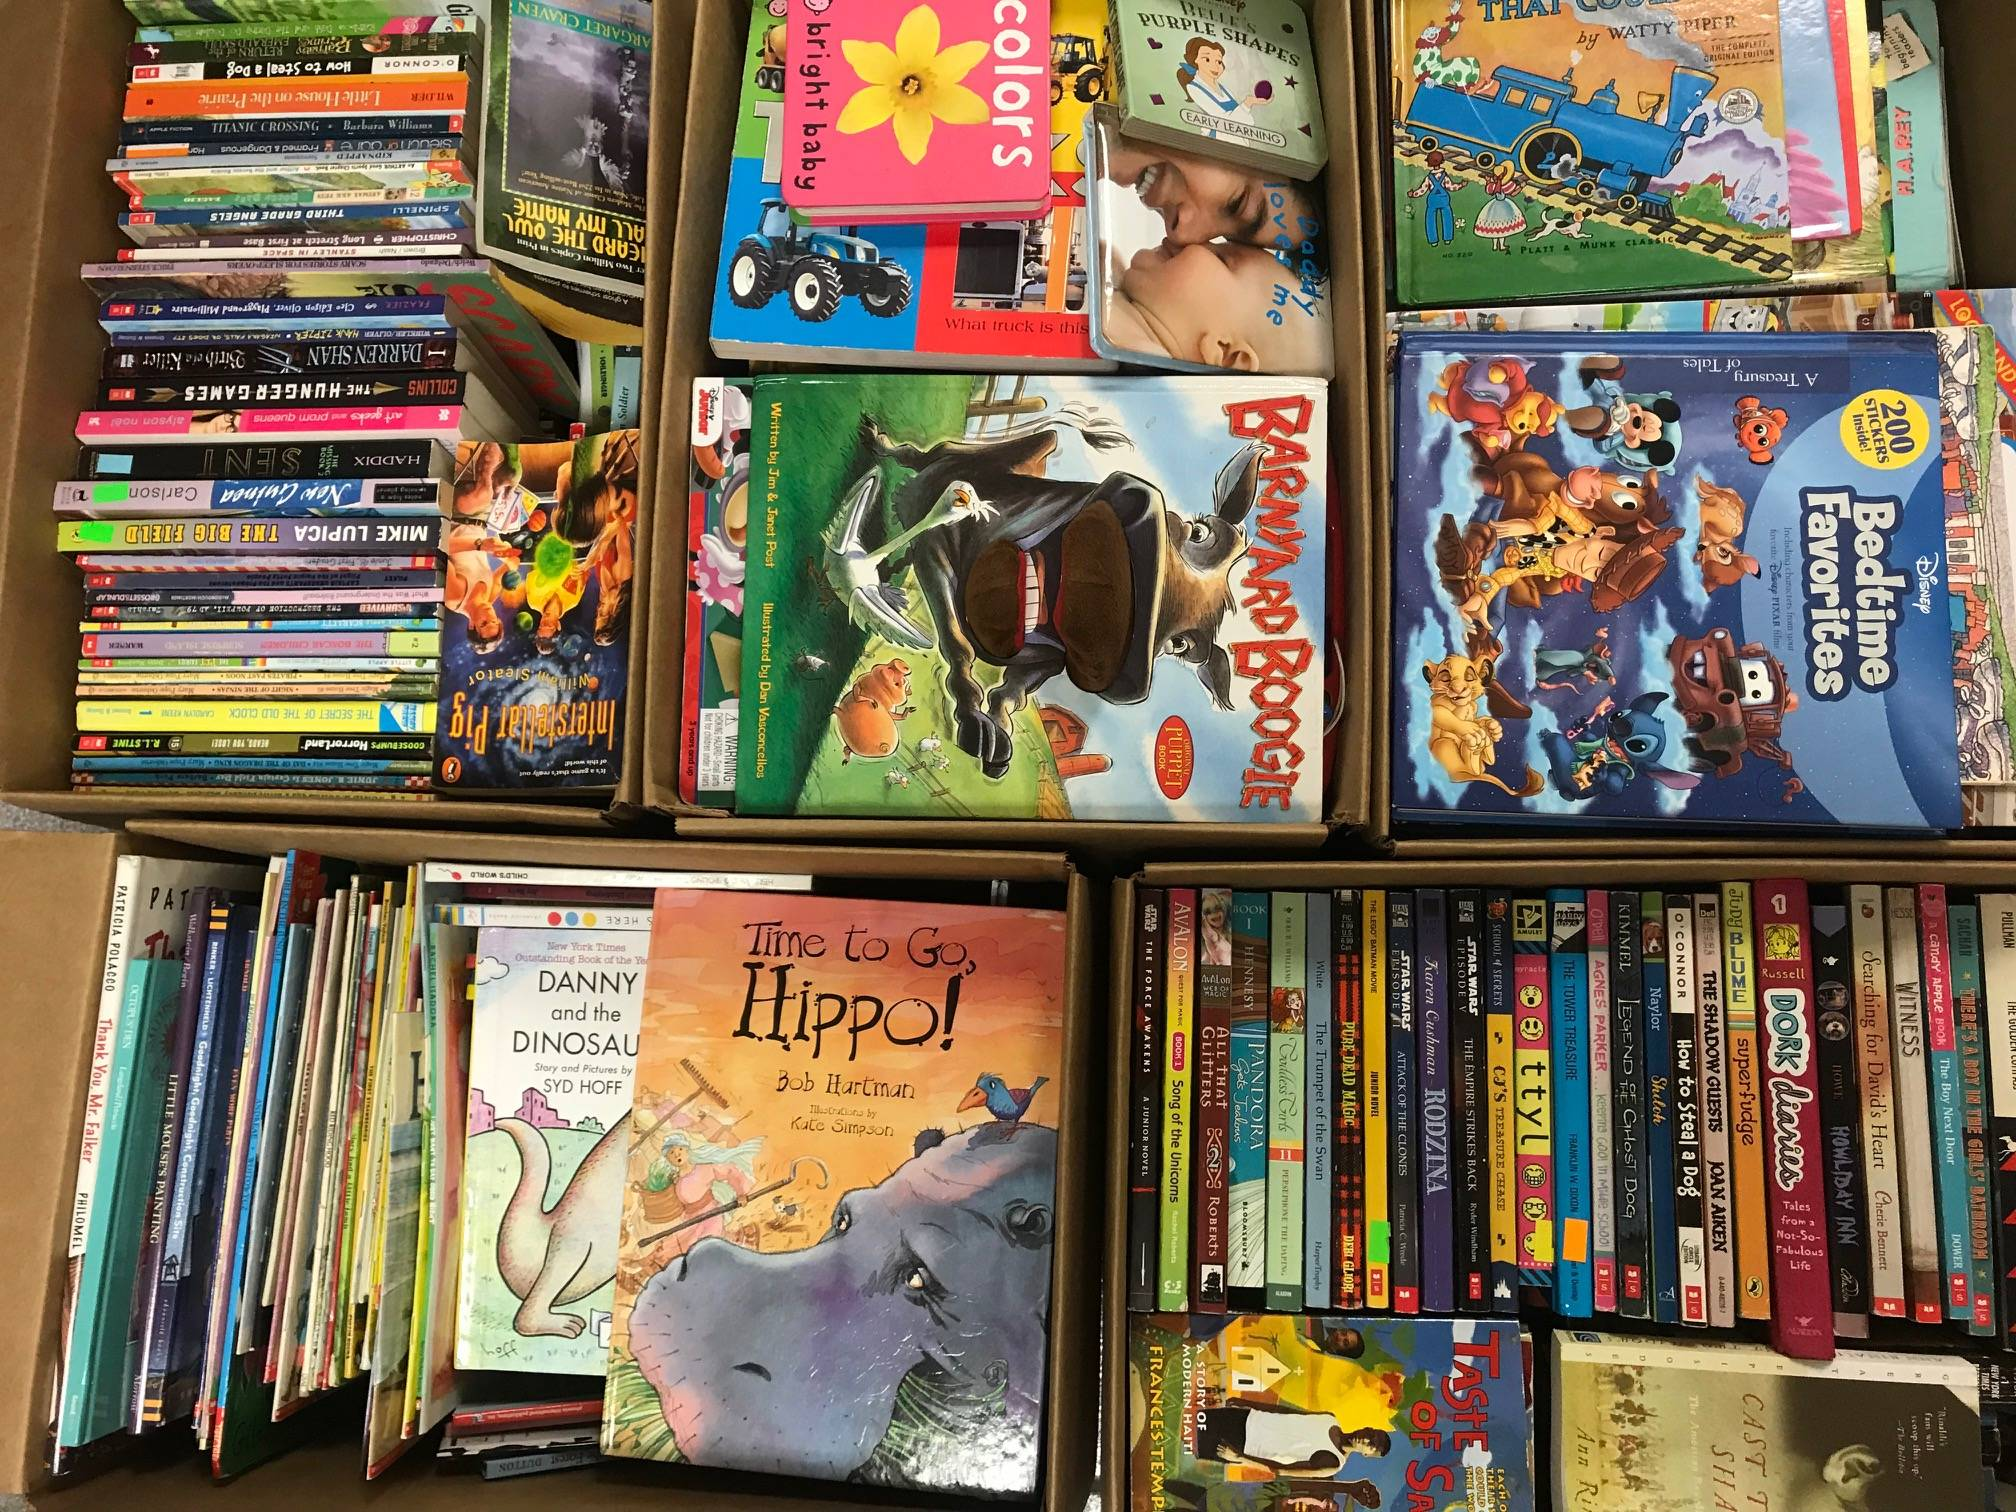 Giant boxes of kids books sold by the book bundler